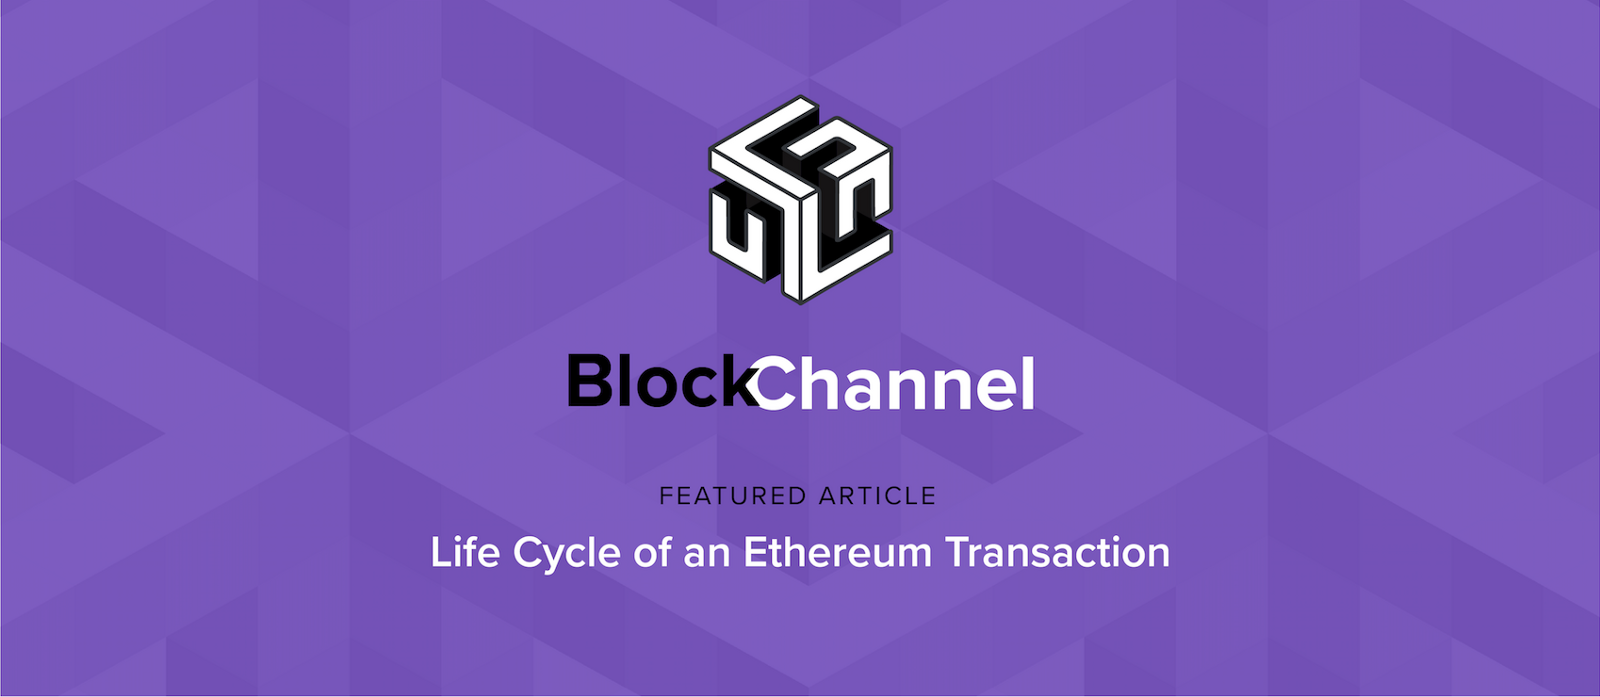 Life Cycle Of An Ethereum Transaction Blockchannel Medium The Diagram Below Shows How A Basic Virtual Private Network Functions Transactions Are At Heart Blockchain Or Any For That Matter When You Interact With